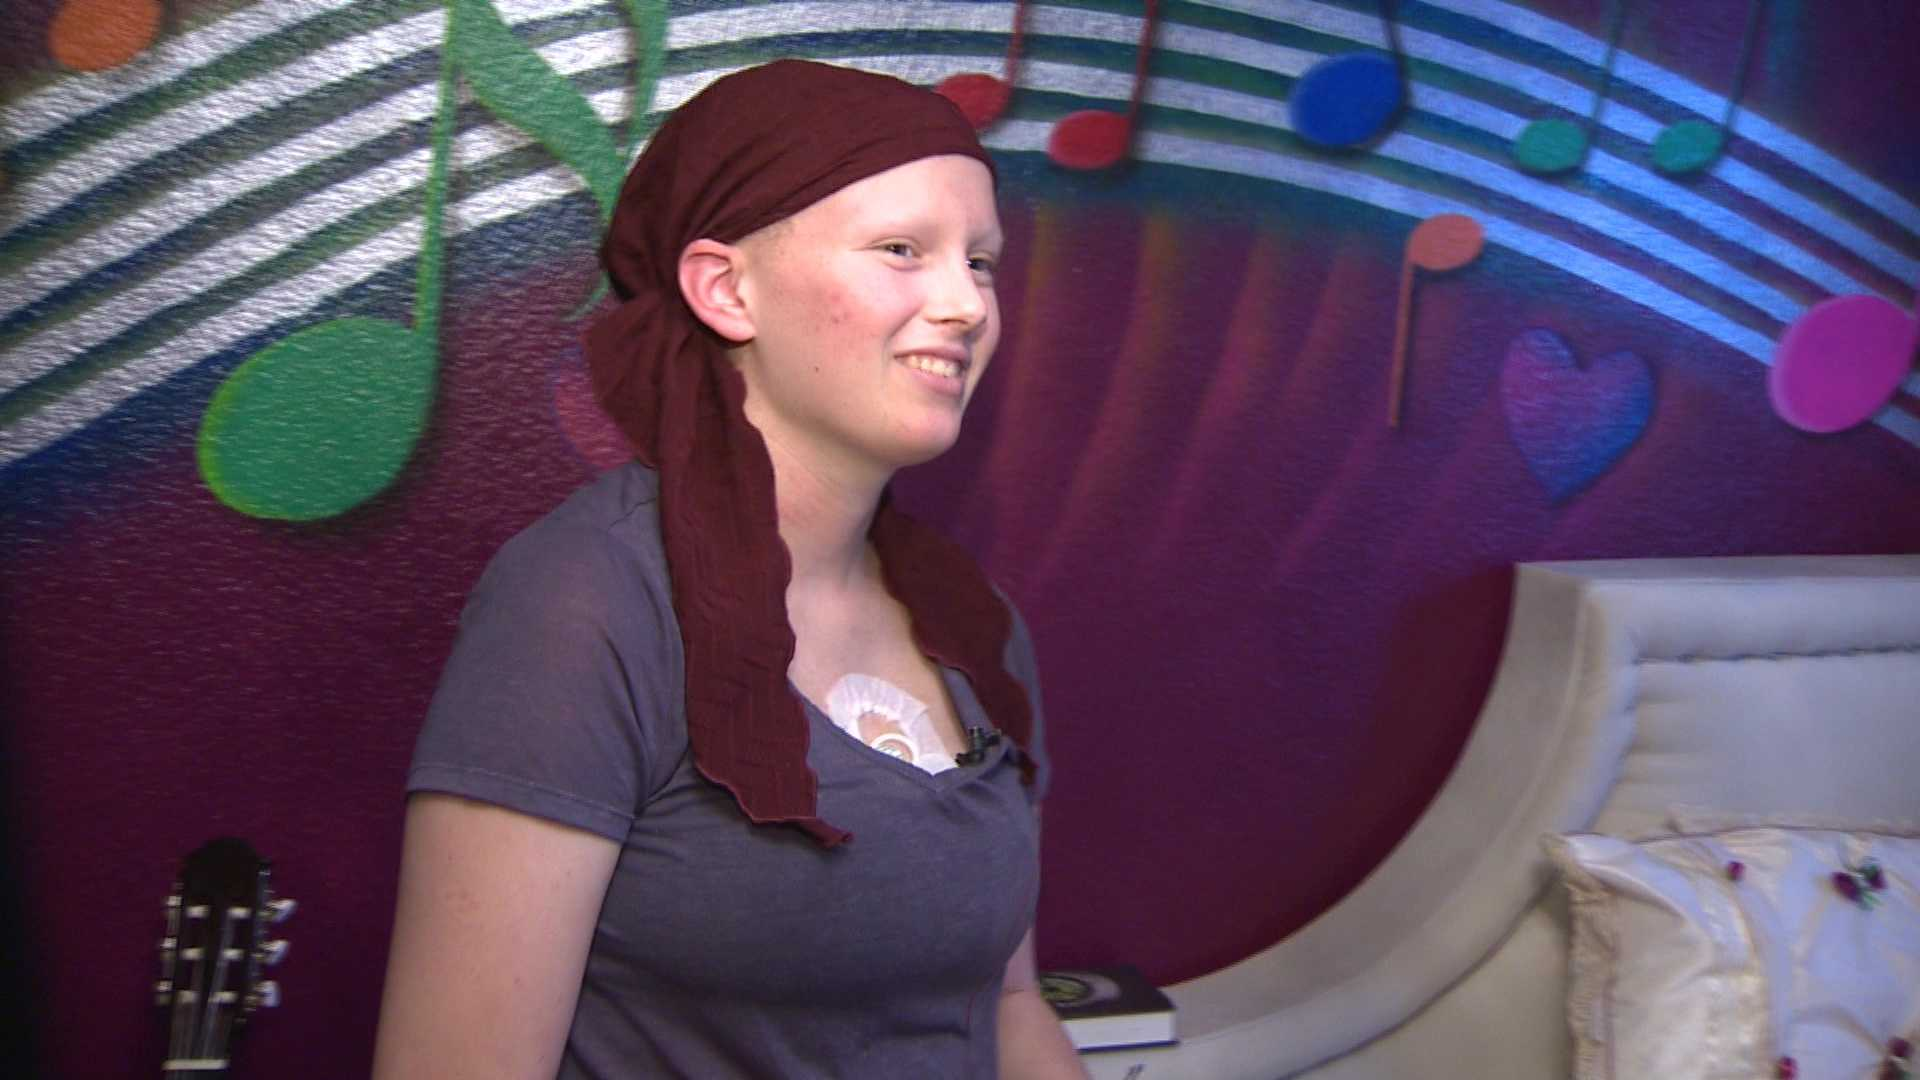 Samantha Bloom, 13, is battling cancer. Nonprofit Sweet Dreams Foundation did a room makeover, creating a retreat for Bloom after she comes home from chemotherapy.